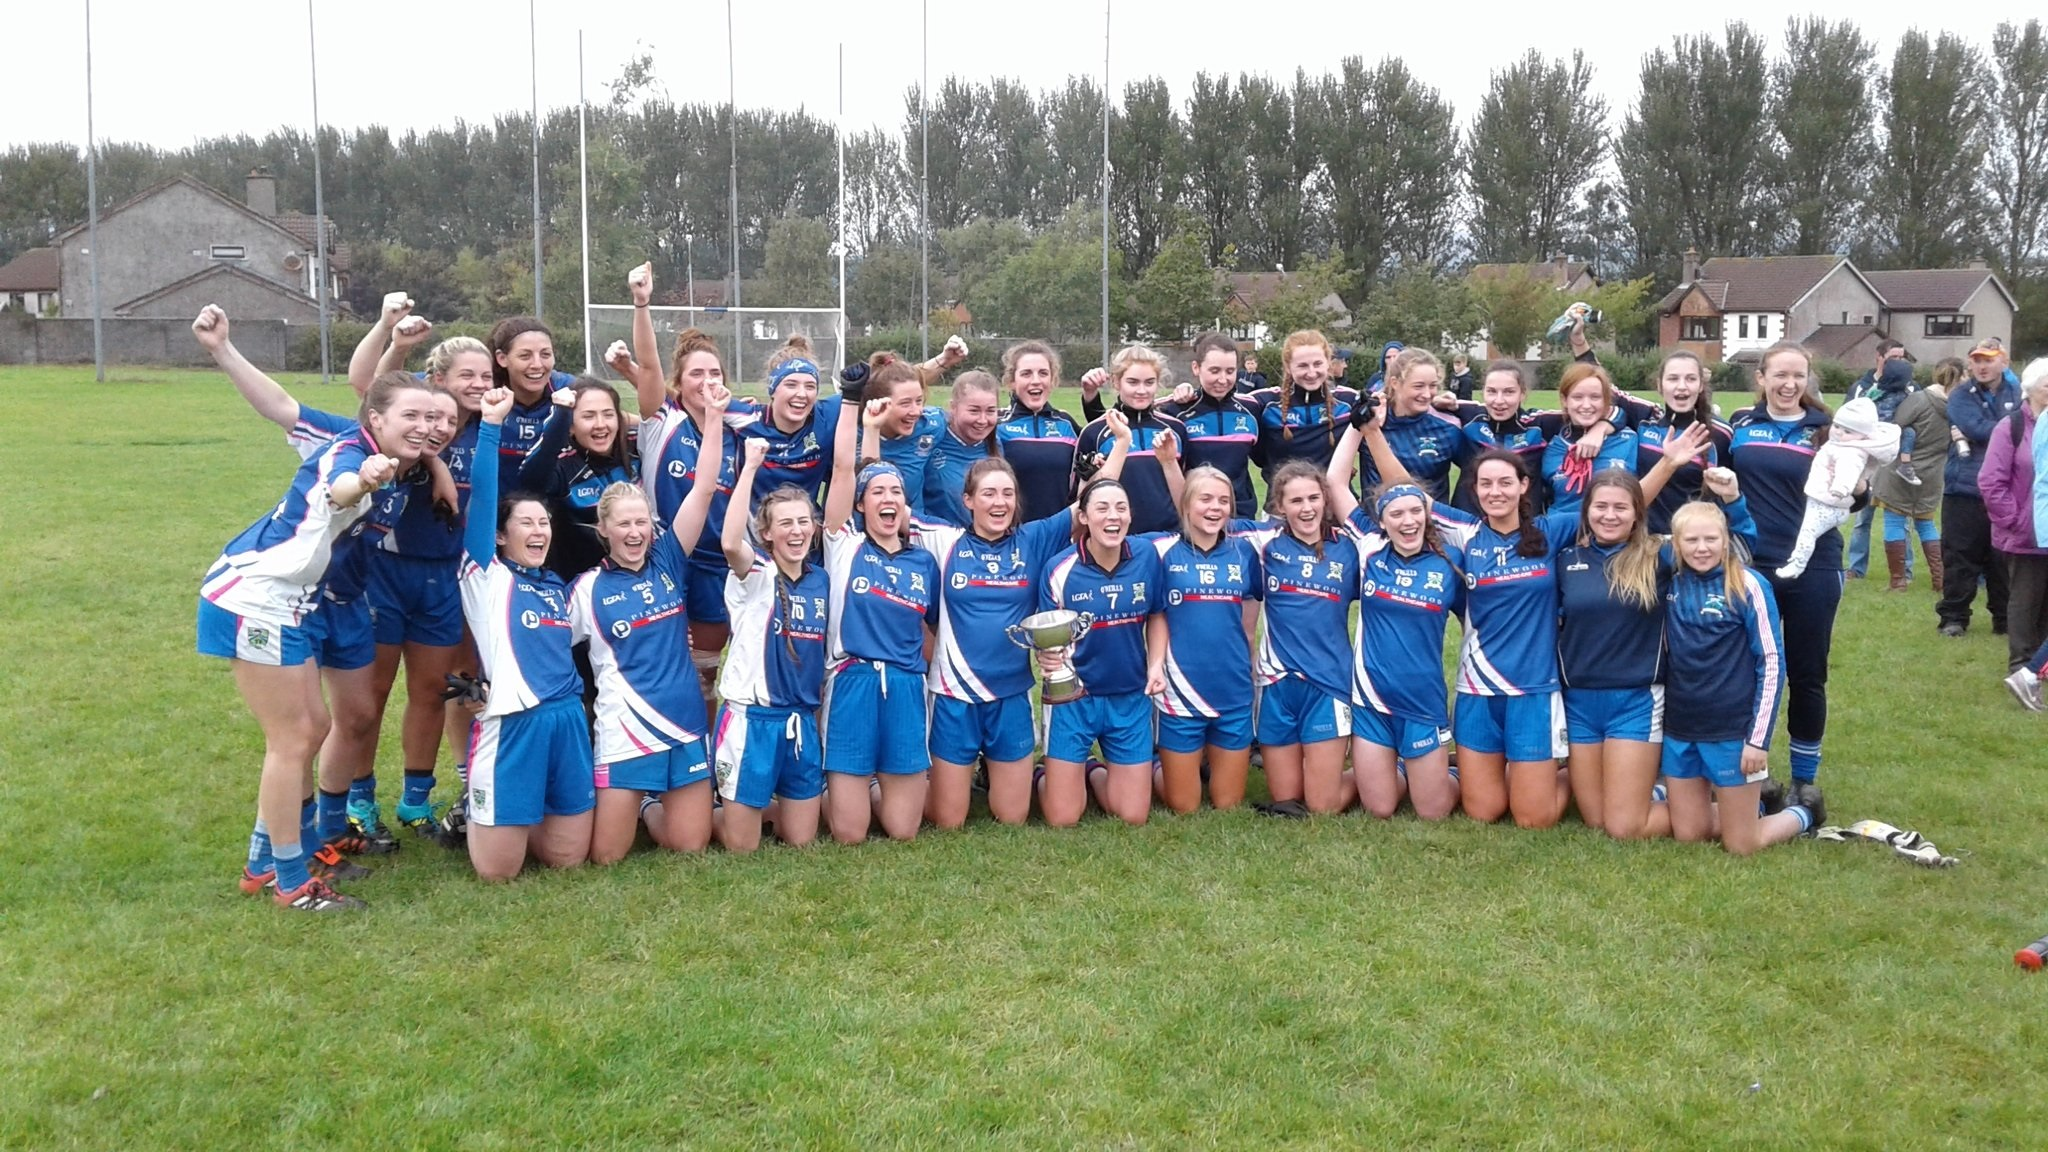 37 in a row for the Ballymacarbry Ladies footballers!